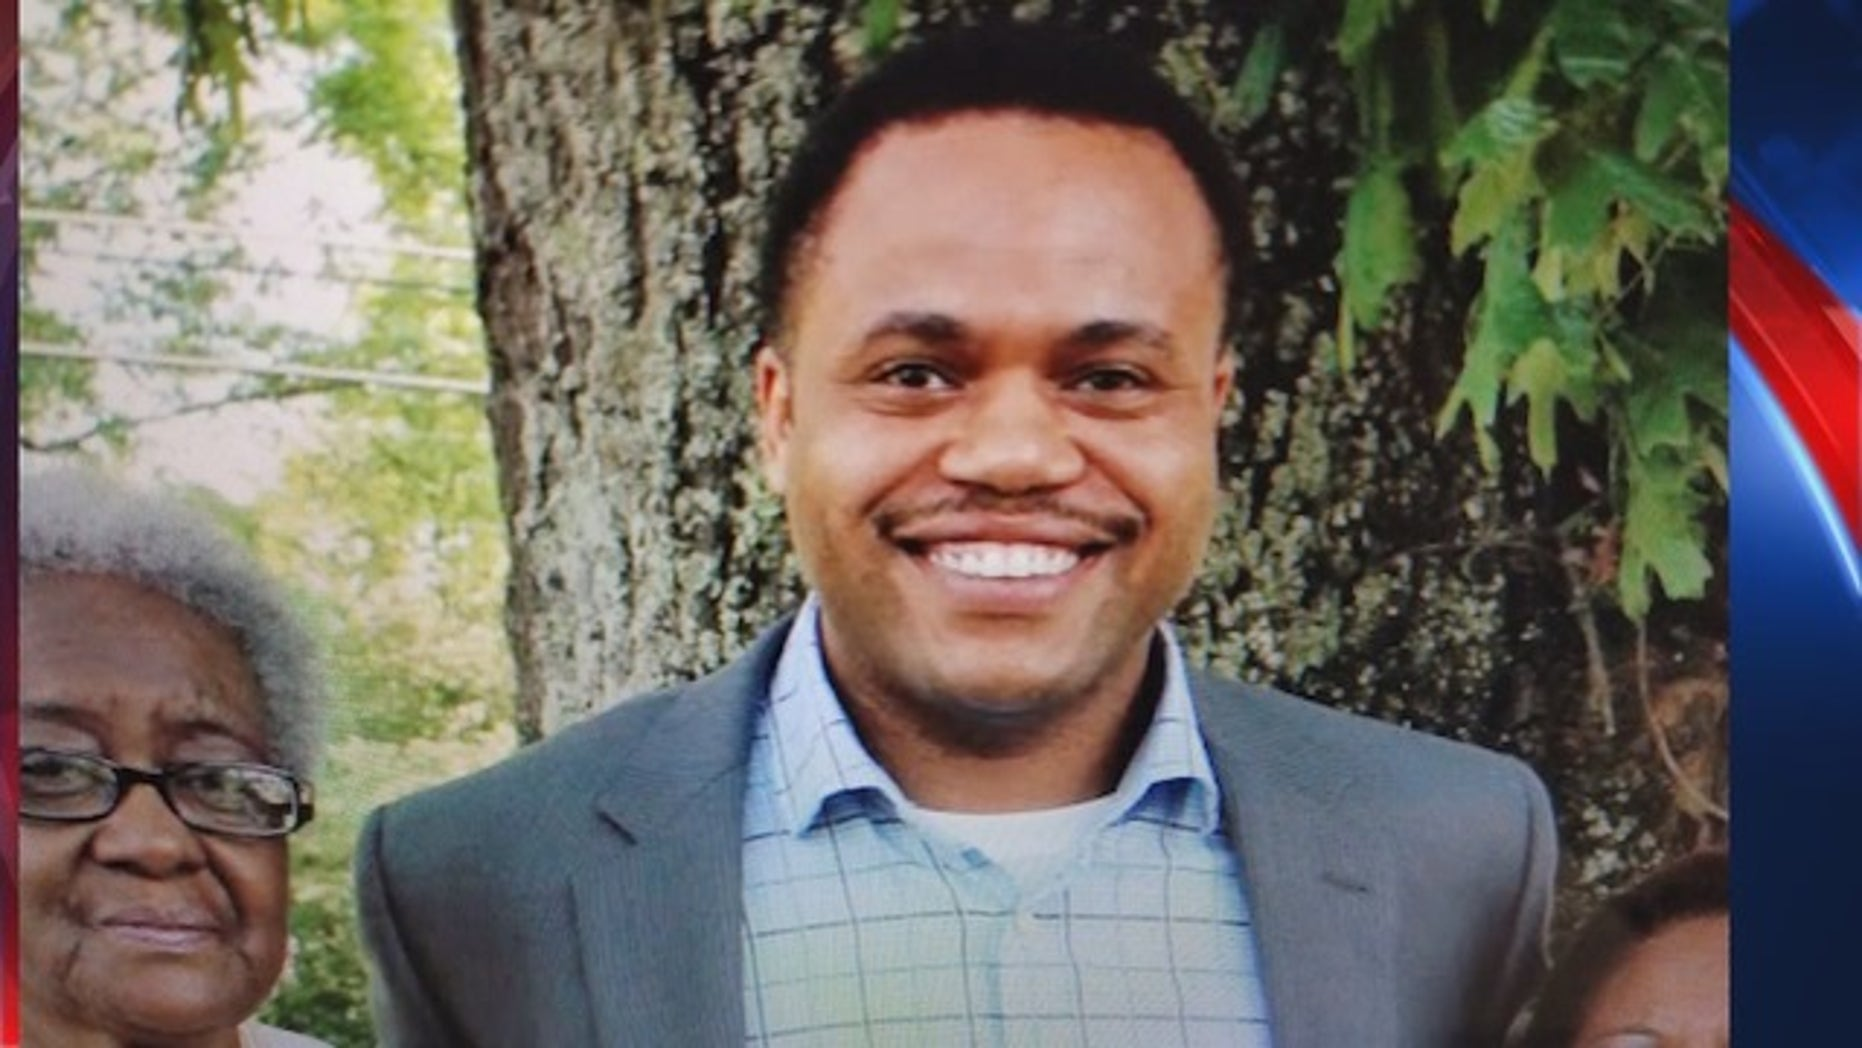 Timothy Cunningham has been missing for more than a week.